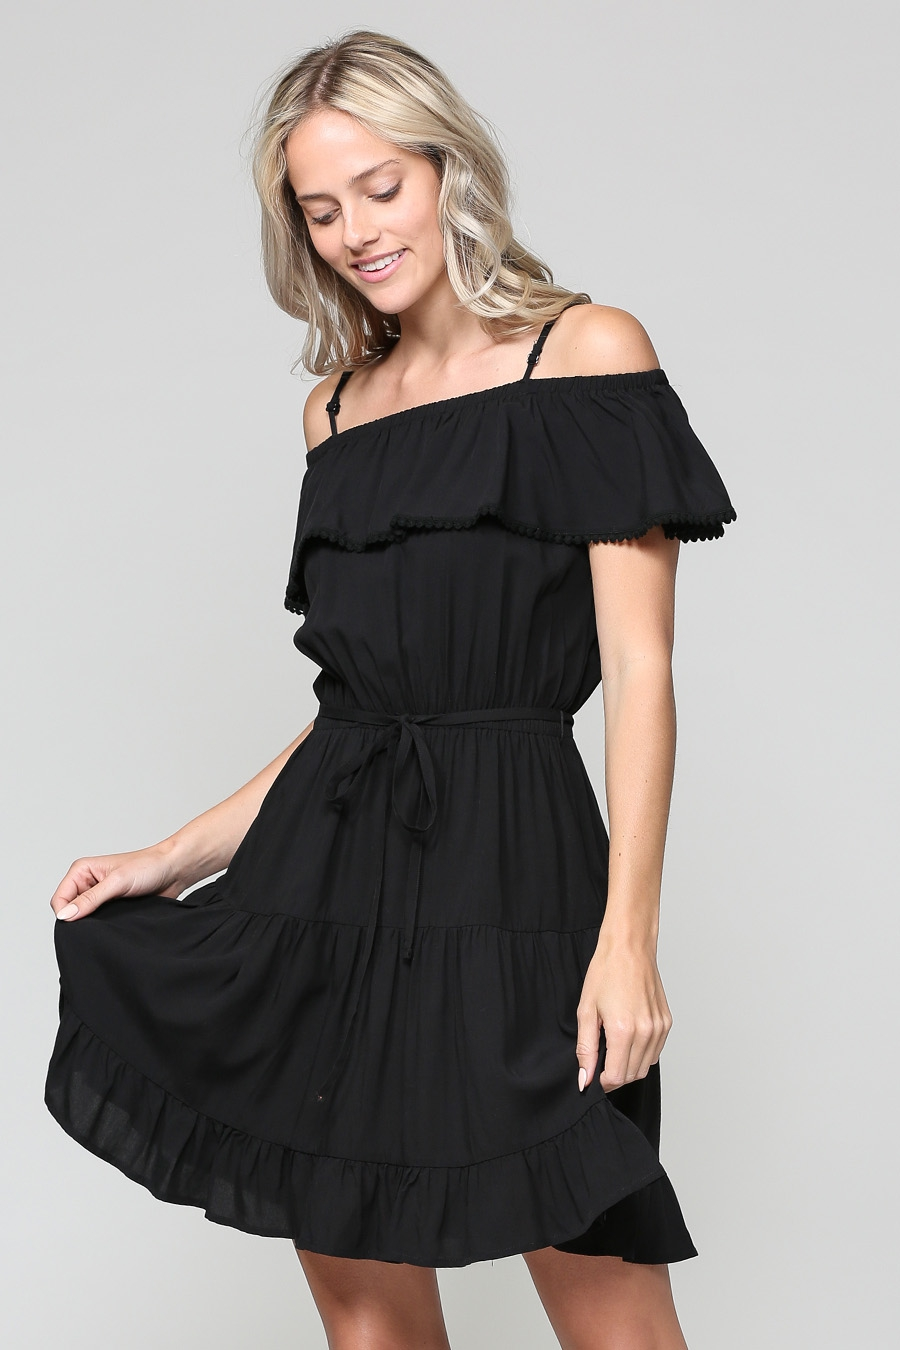 RUFFLE MIDI DRESS WITH WAIST TIE - orangeshine.com